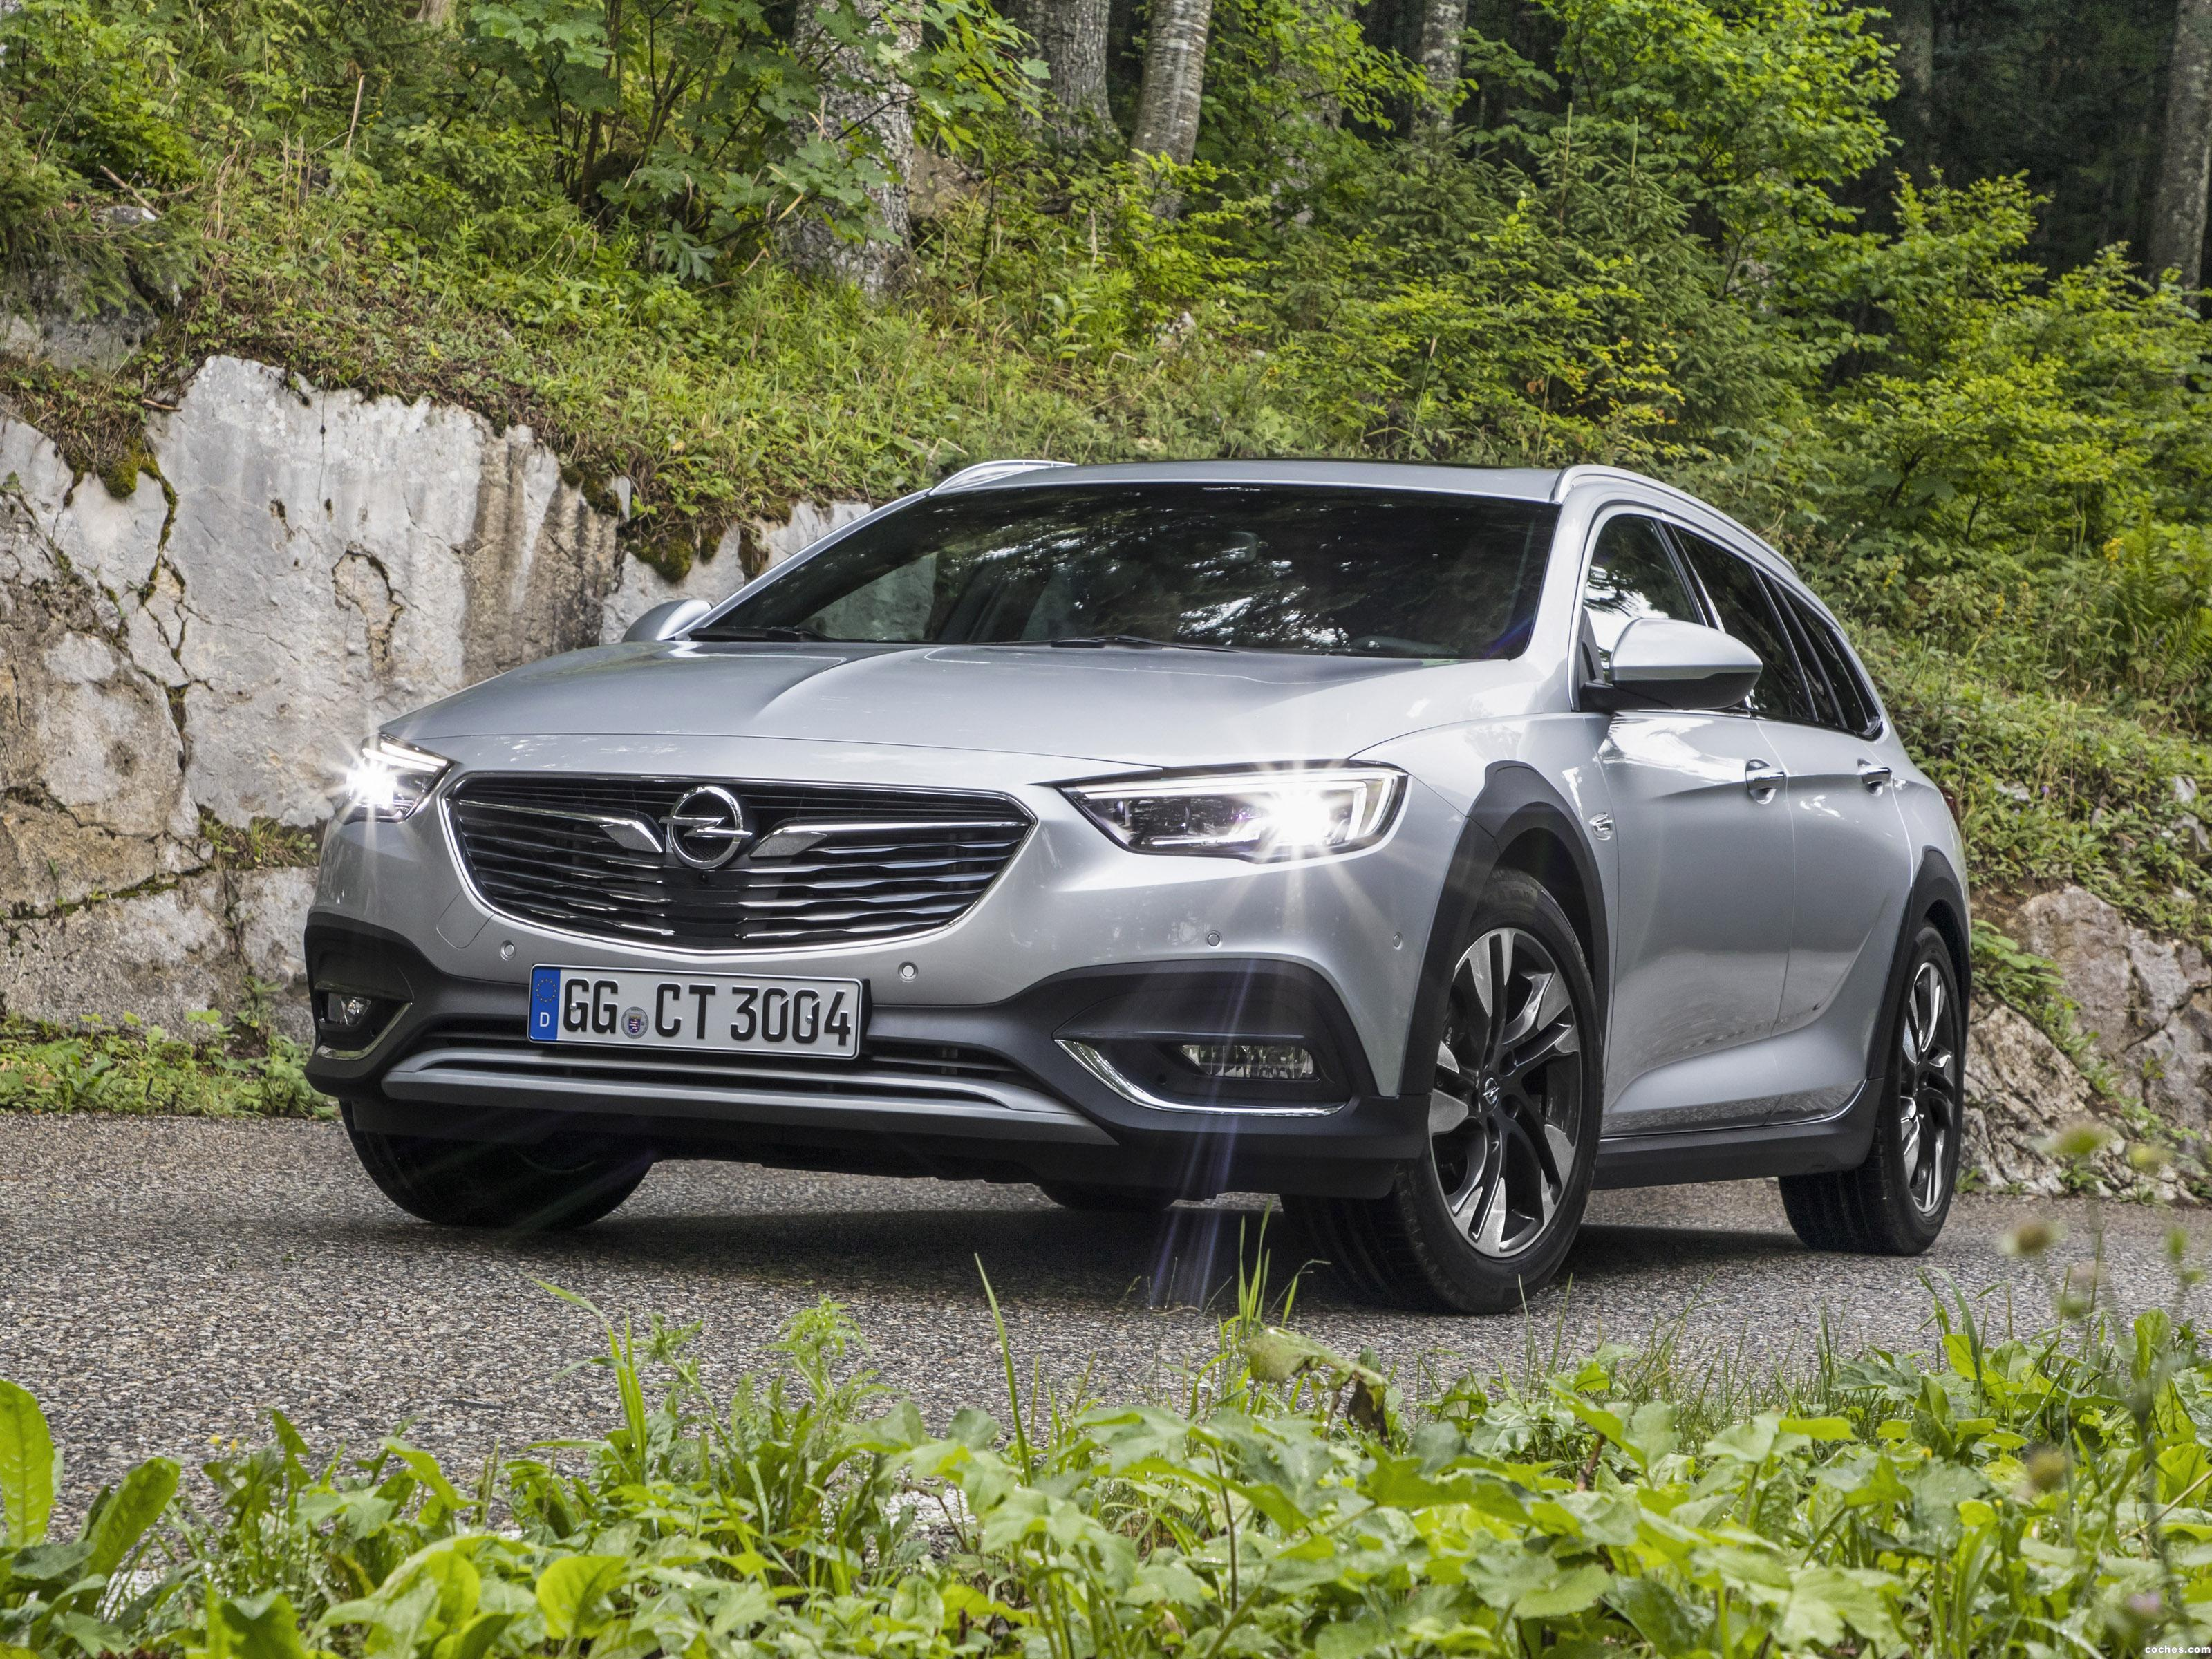 Foto 2 de Opel Insignia Country Tourer Turbo 4x4 2017